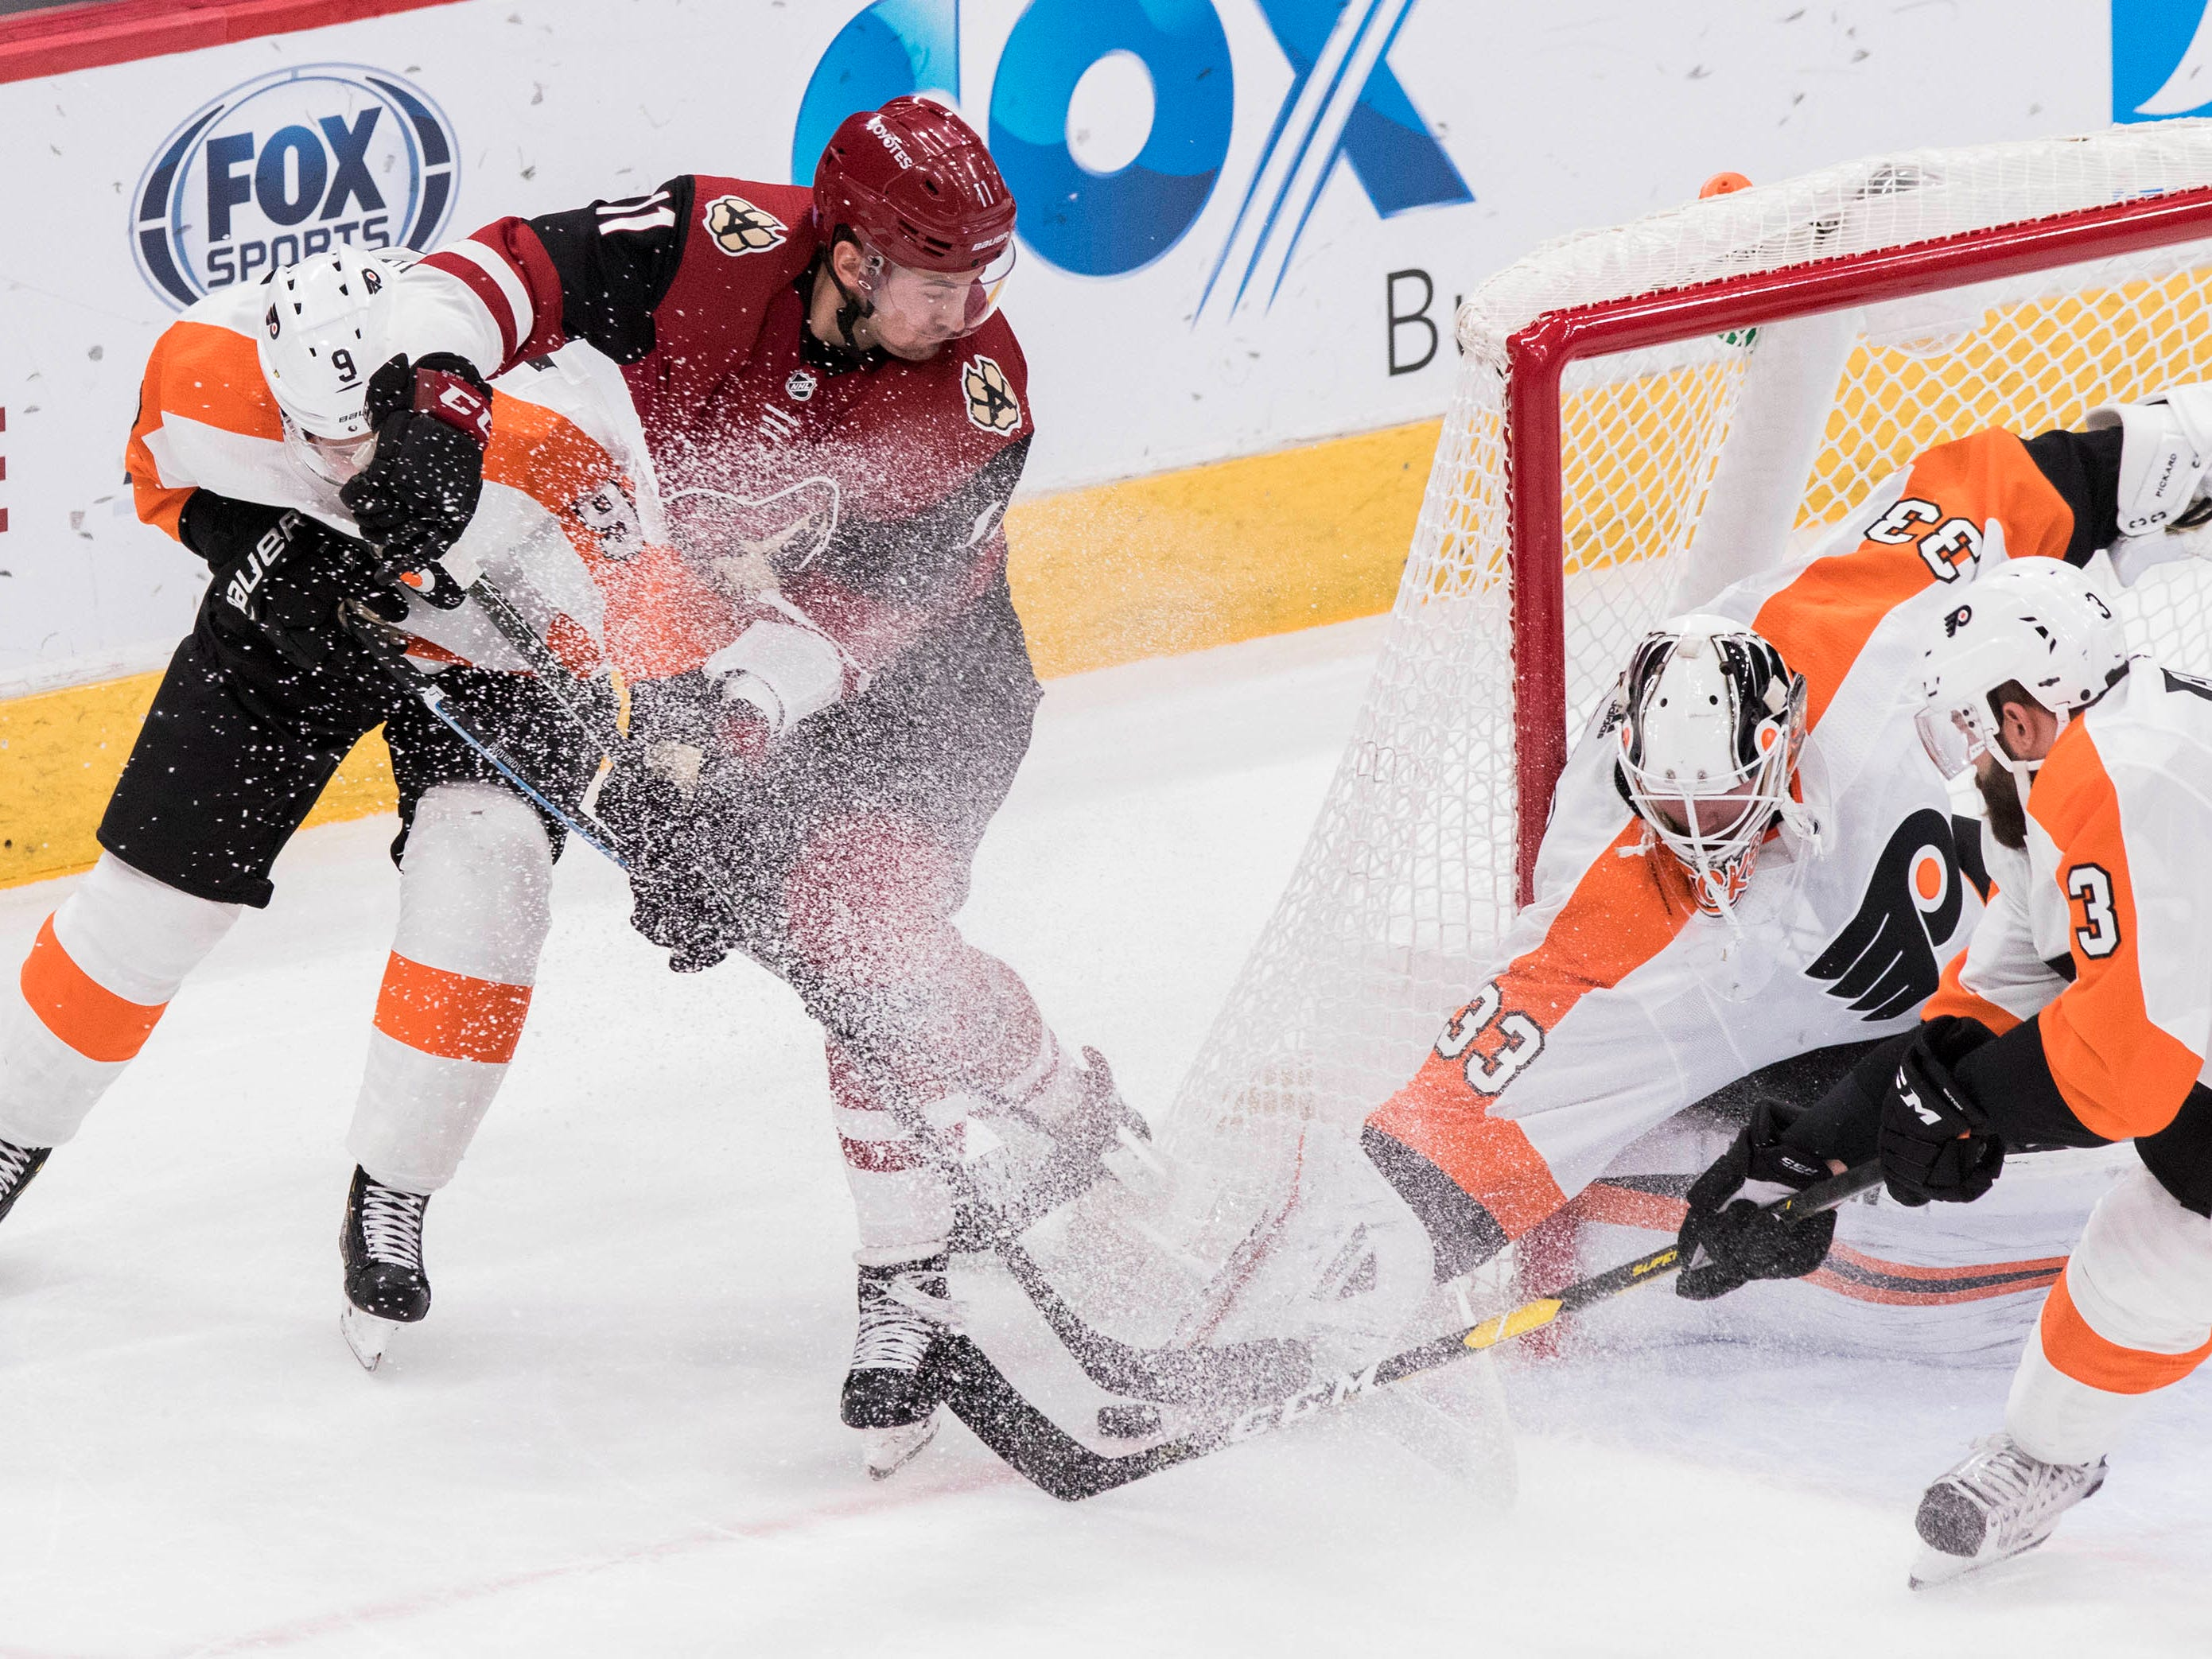 Arizona Coyotes' Brendan Perlini (11) and the Philadelphia Flyers' Ivan Provorov (9) and goalie Calvin Pickard (33) fight for the puck during the second period of an NHL hockey game Monday, Nov. 5, 2018, in Glendale, Ariz. (AP Photo/Darryl Webb)